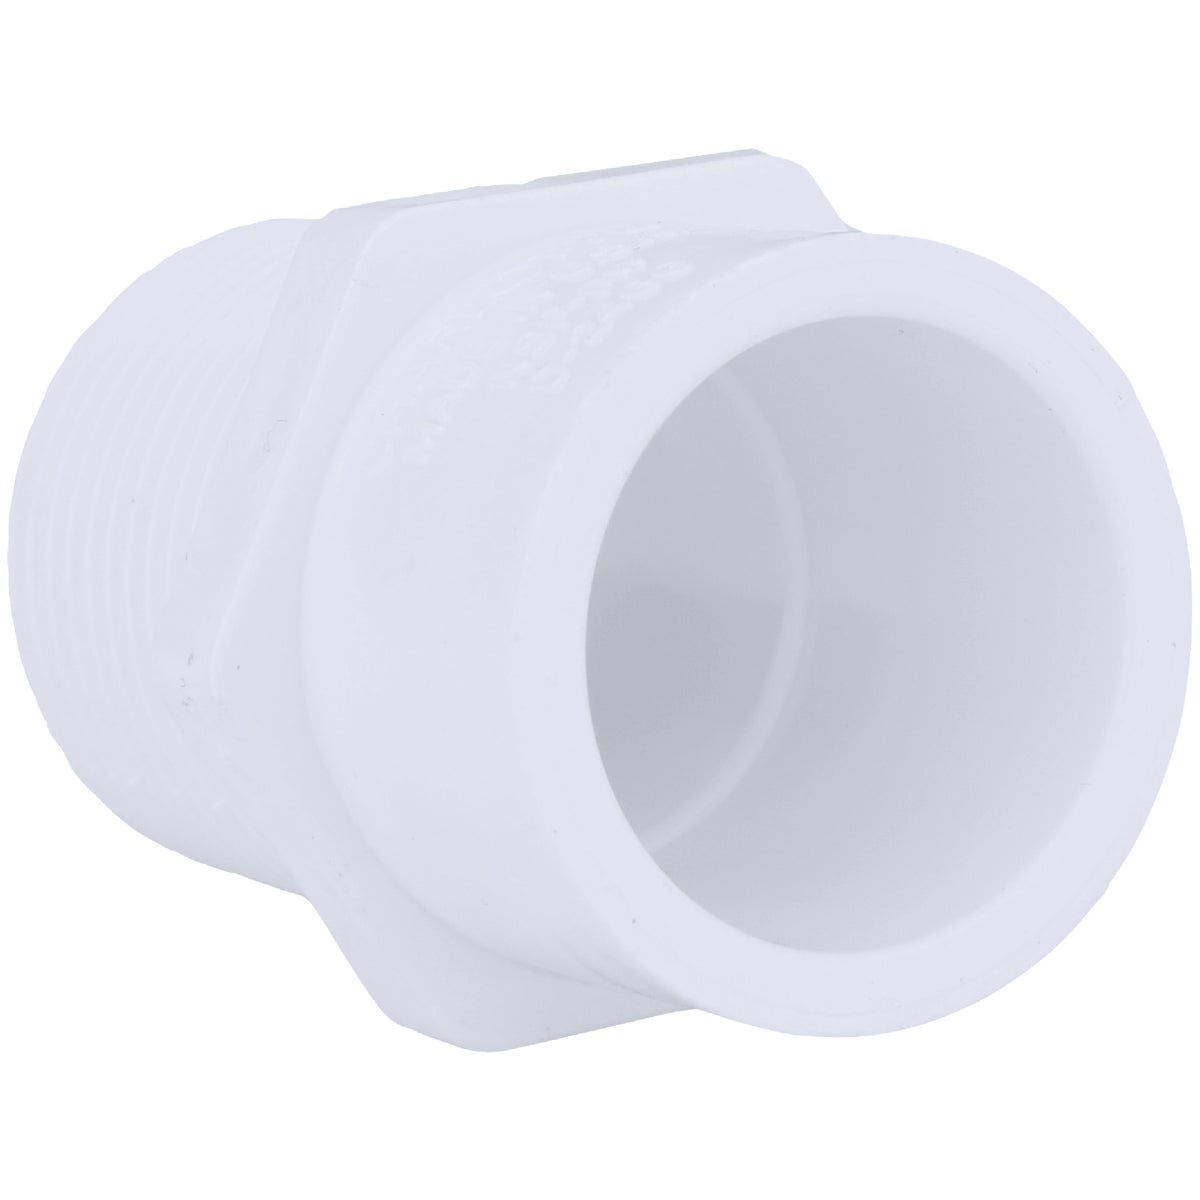 1X3/4 PVC MIPXS ADAPTER - 30476 by Genova Inc